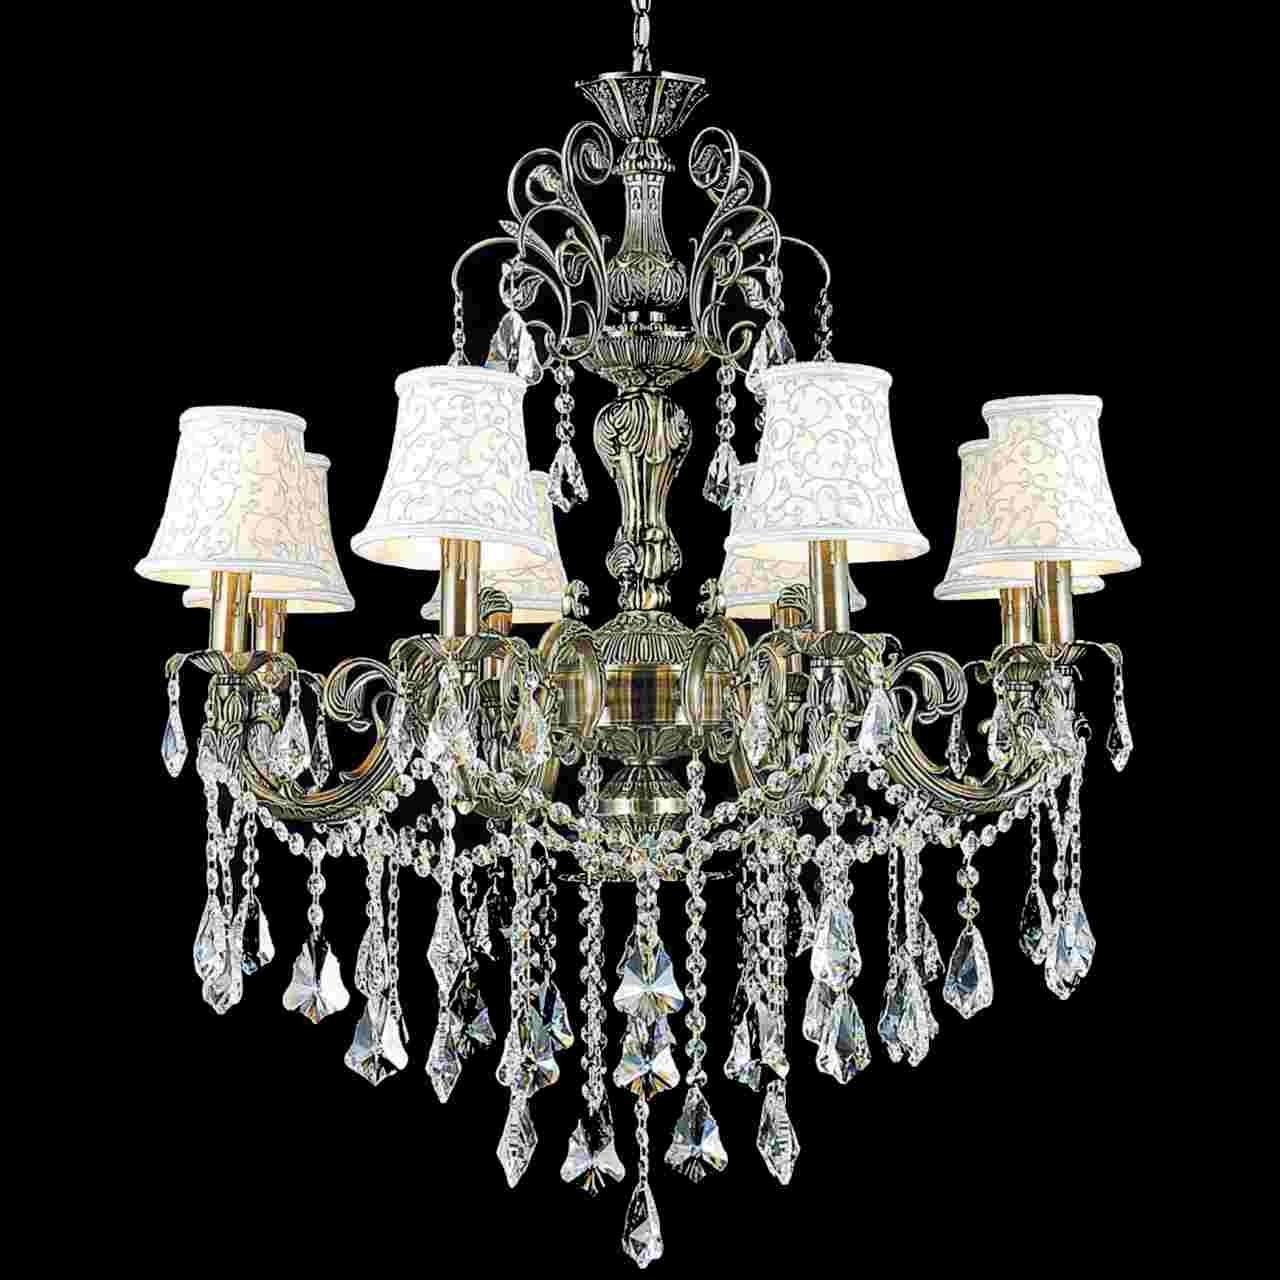 Traditional Chandelier With Well Known Brizzo Lighting Stores (View 7 of 15)